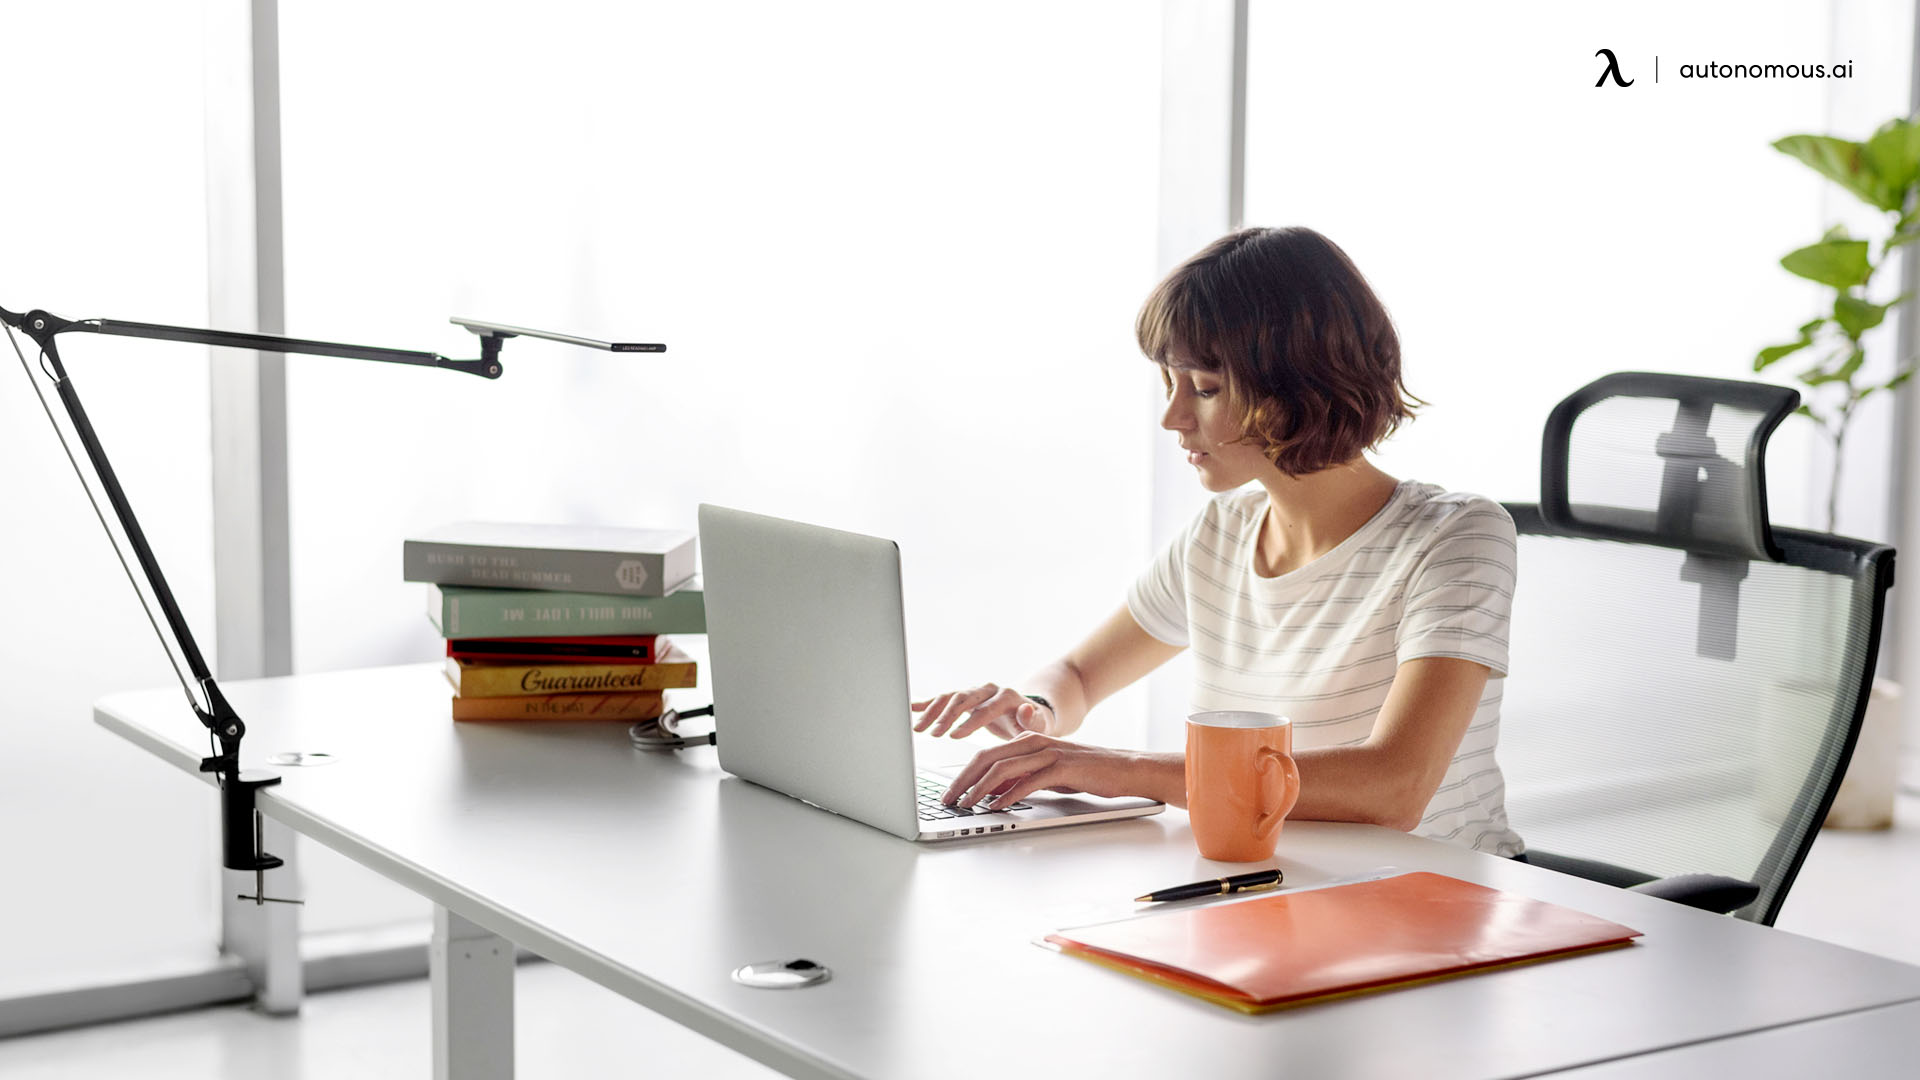 Special Considerations for Your Ergonomic Standing Desk Position When Using a Telephone